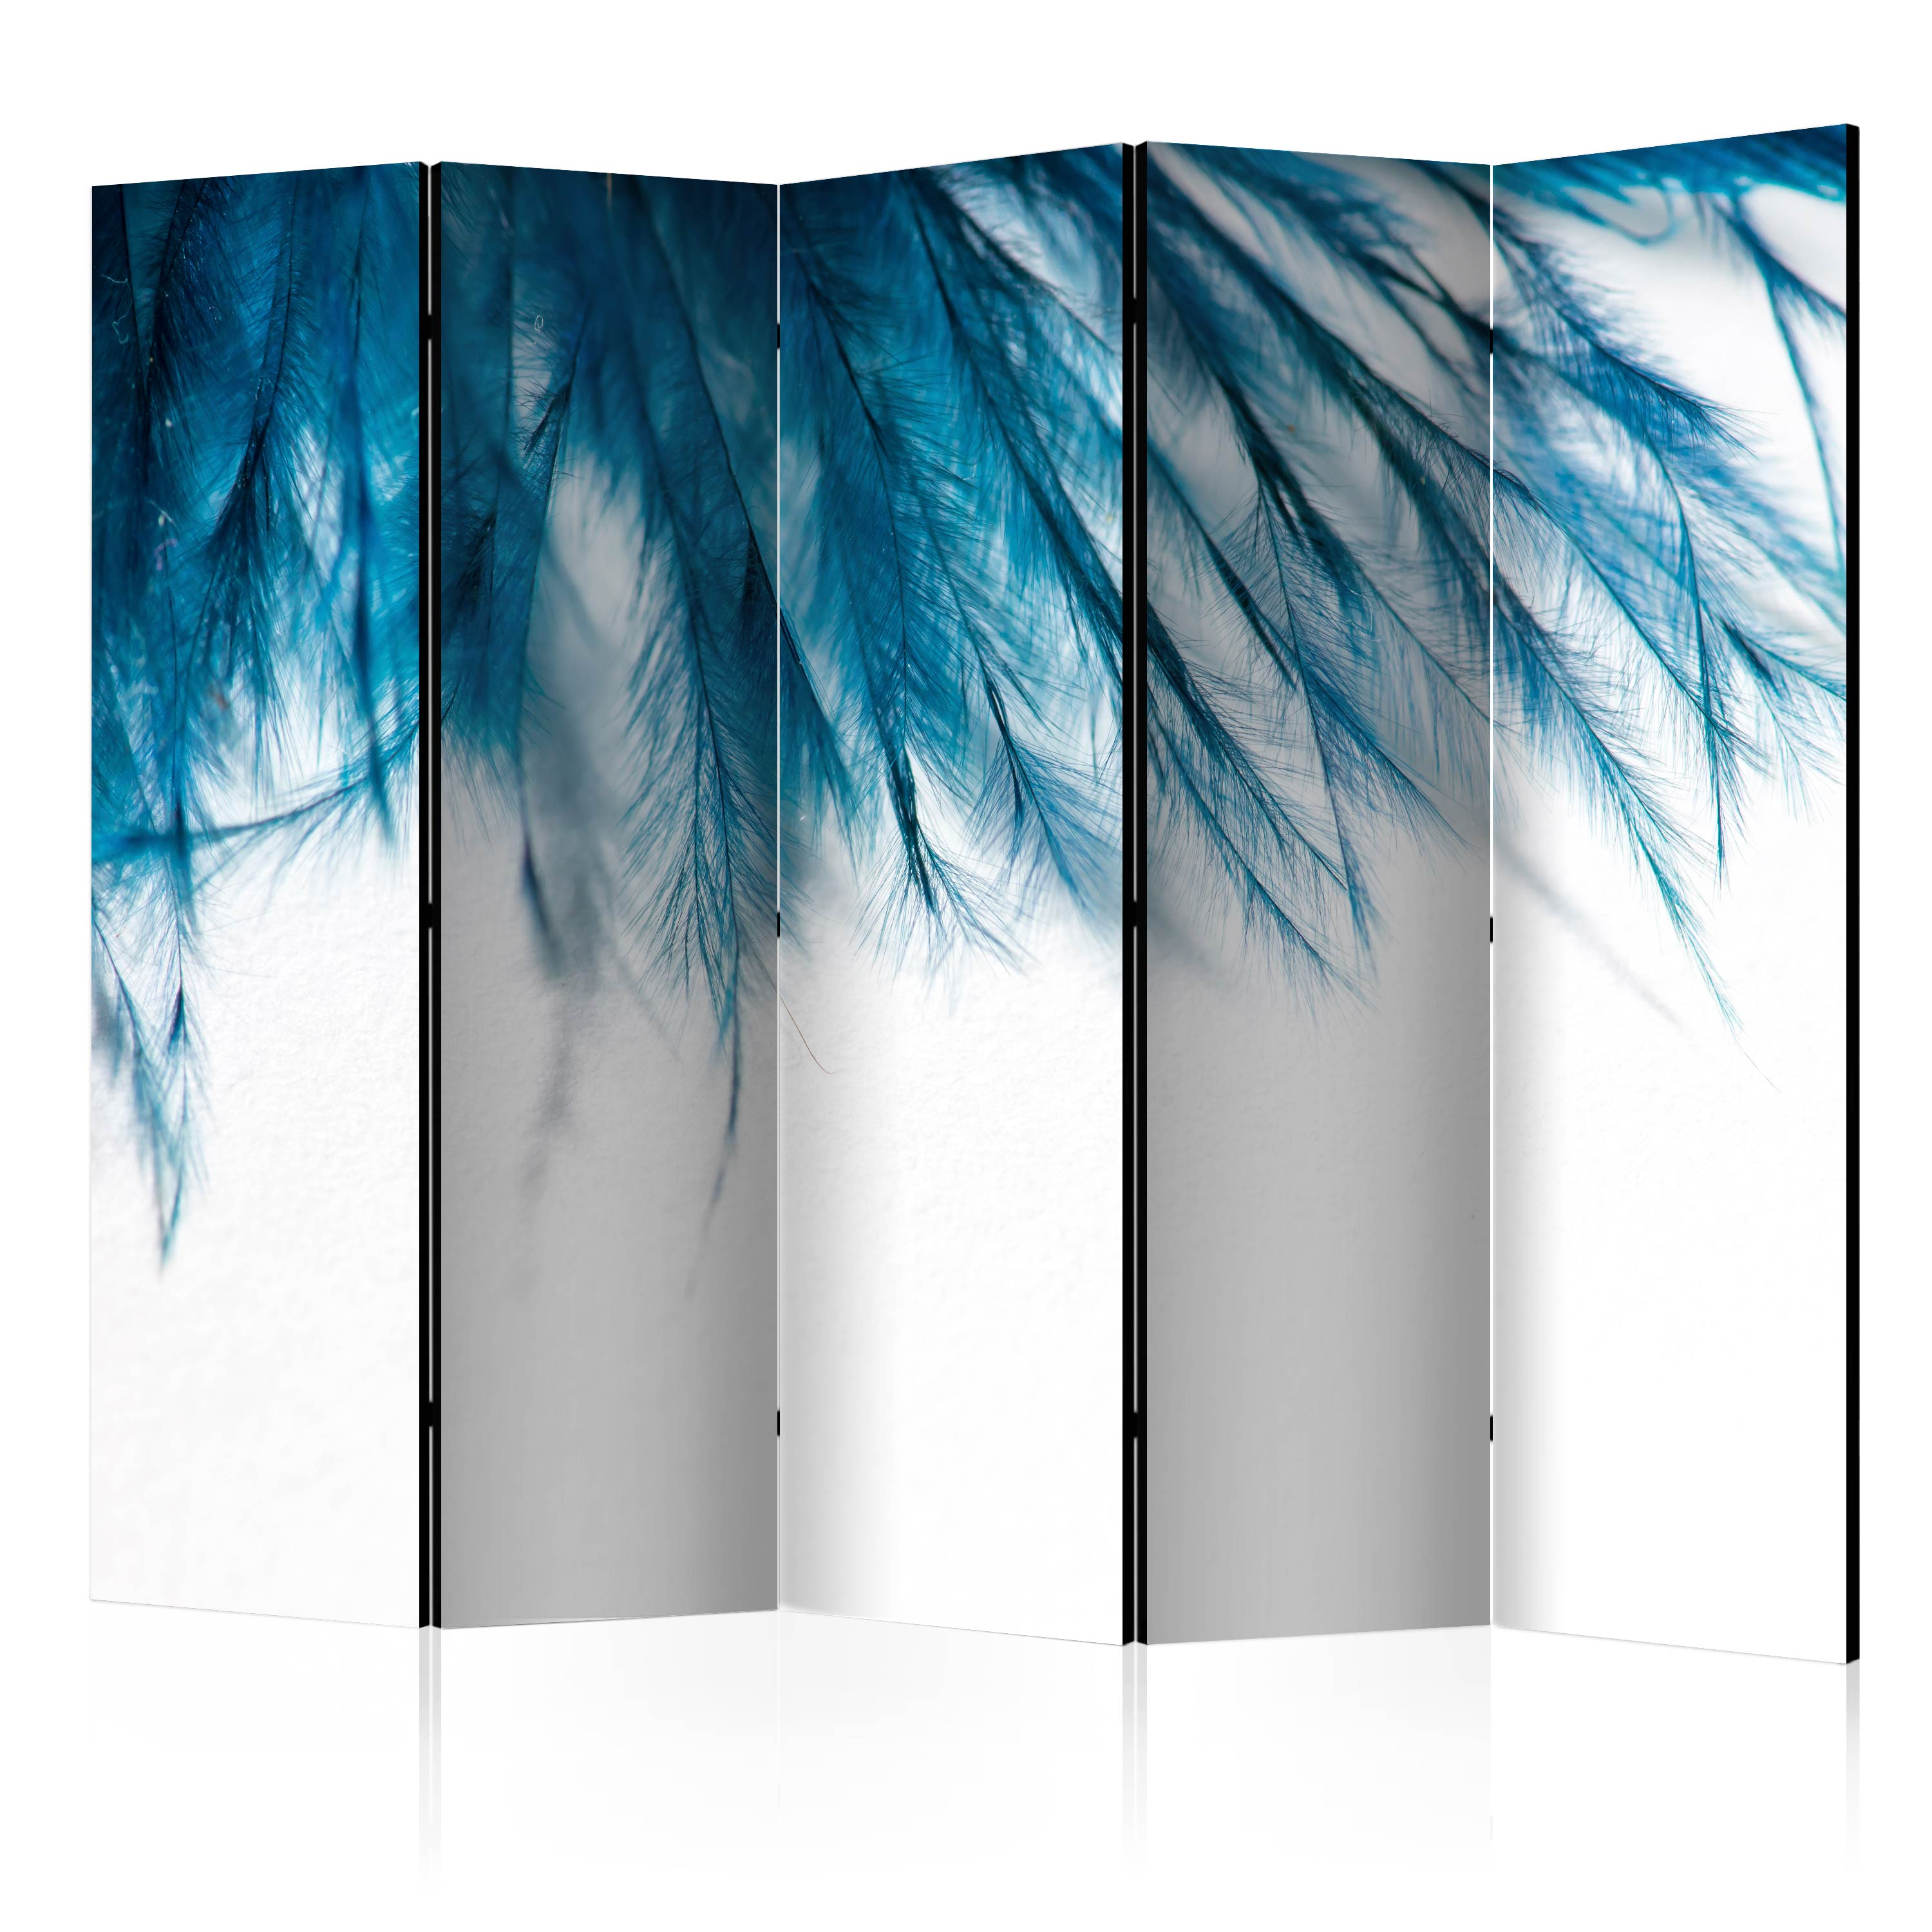 Paravento - Sapphire Feathers II [Room Dividers] 225X172 cm